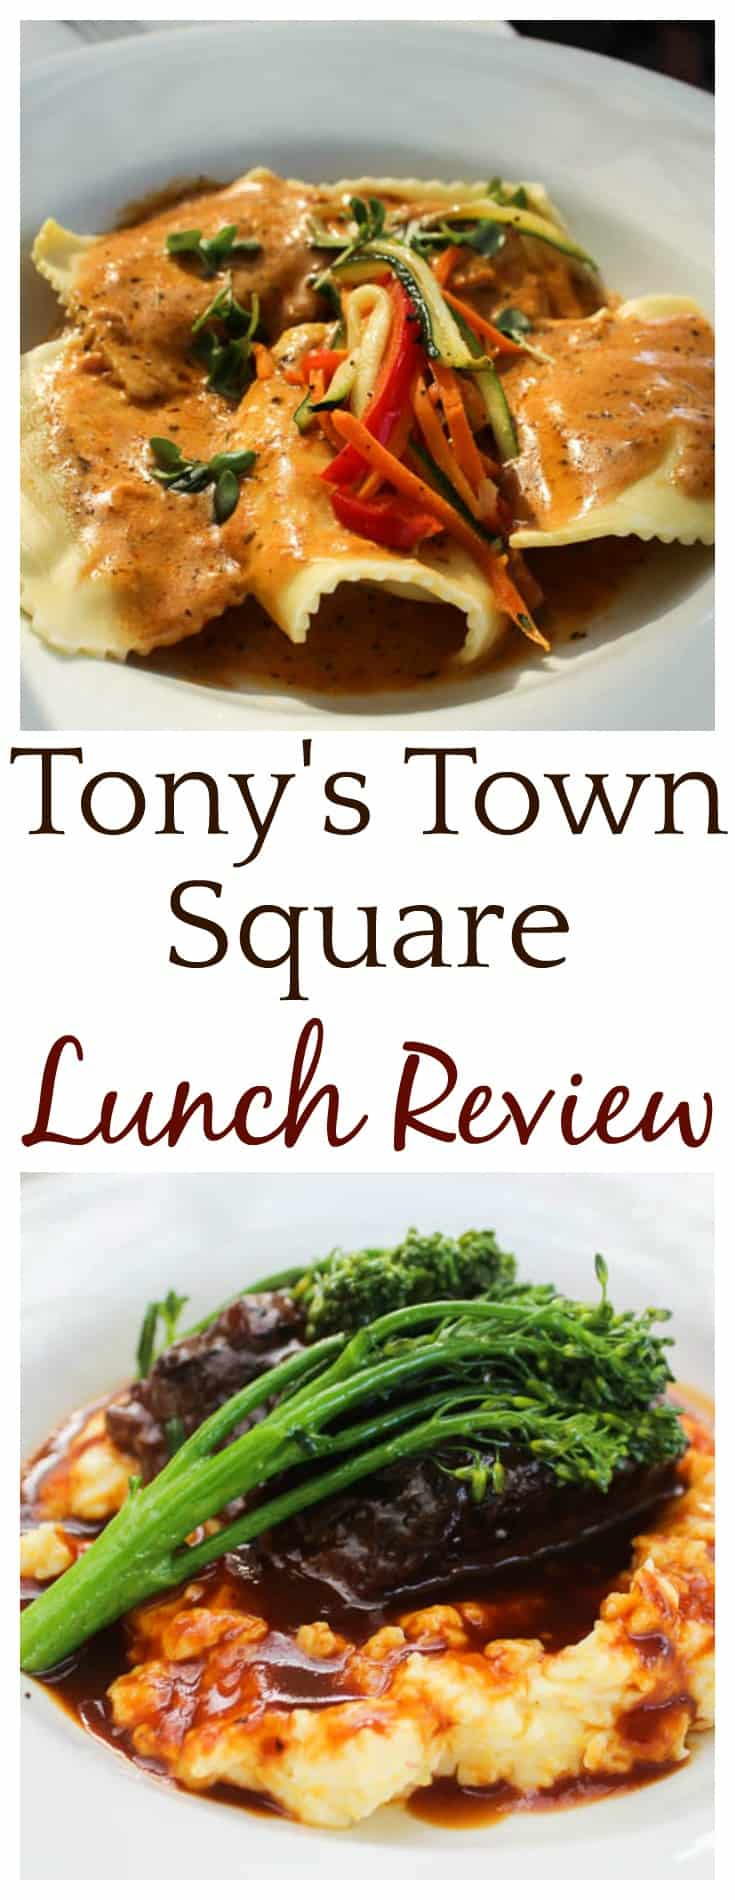 This Tony's Town Square Lunch Review is based on my experience when visiting the restaurant in November 2017 with my family | #disneydining #disneytravel #disney #disneyworld #restaurantreview #tonystownsquare